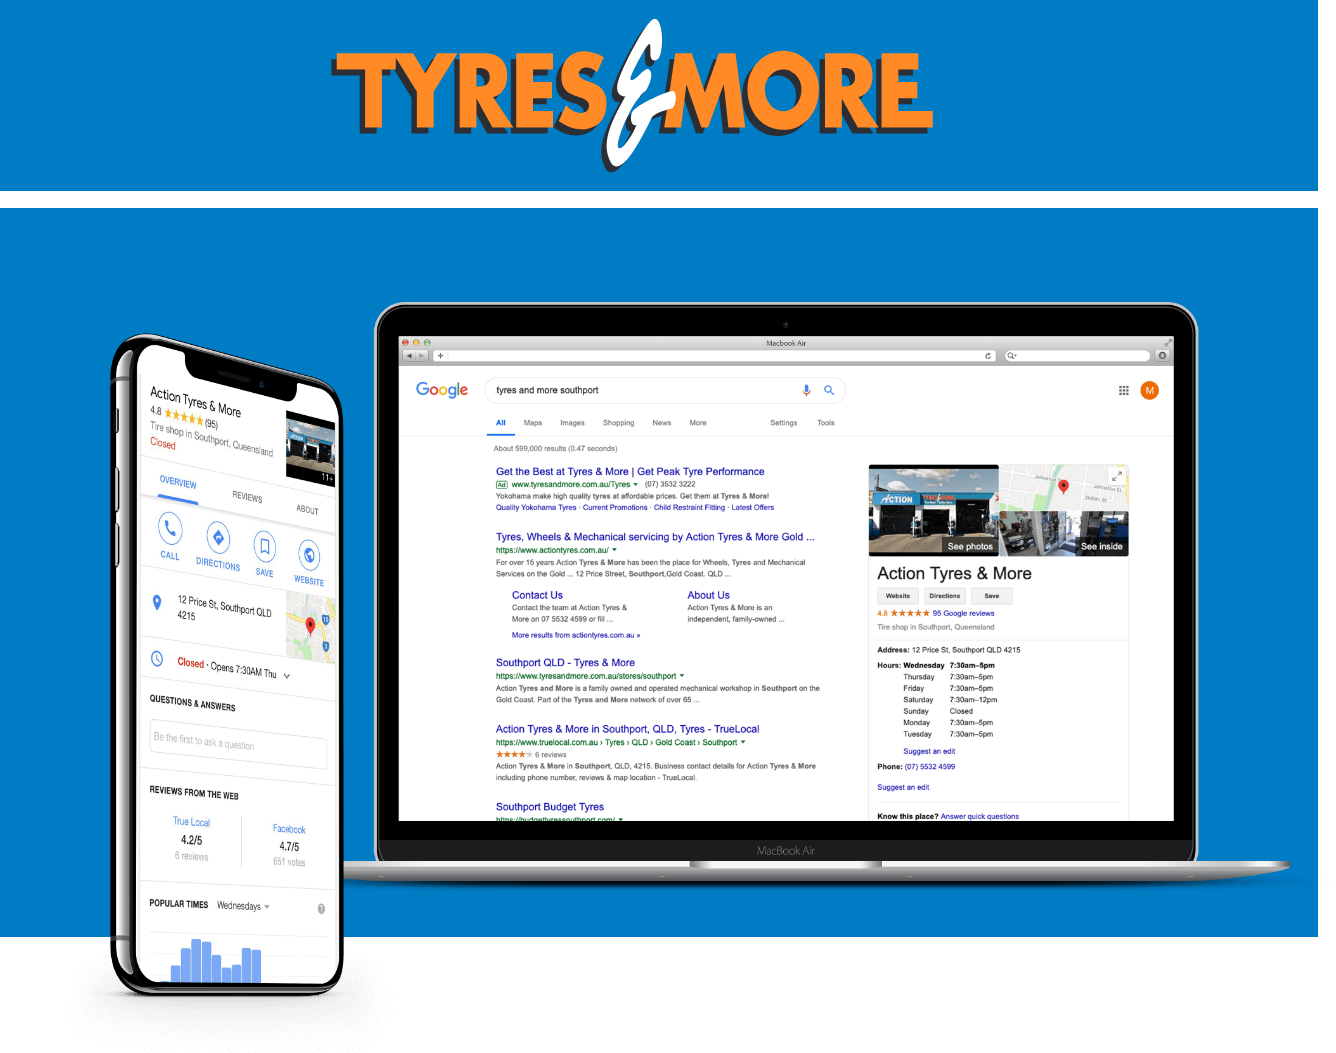 Tyres & More Search Campaign Drives 72% Increase in Leads